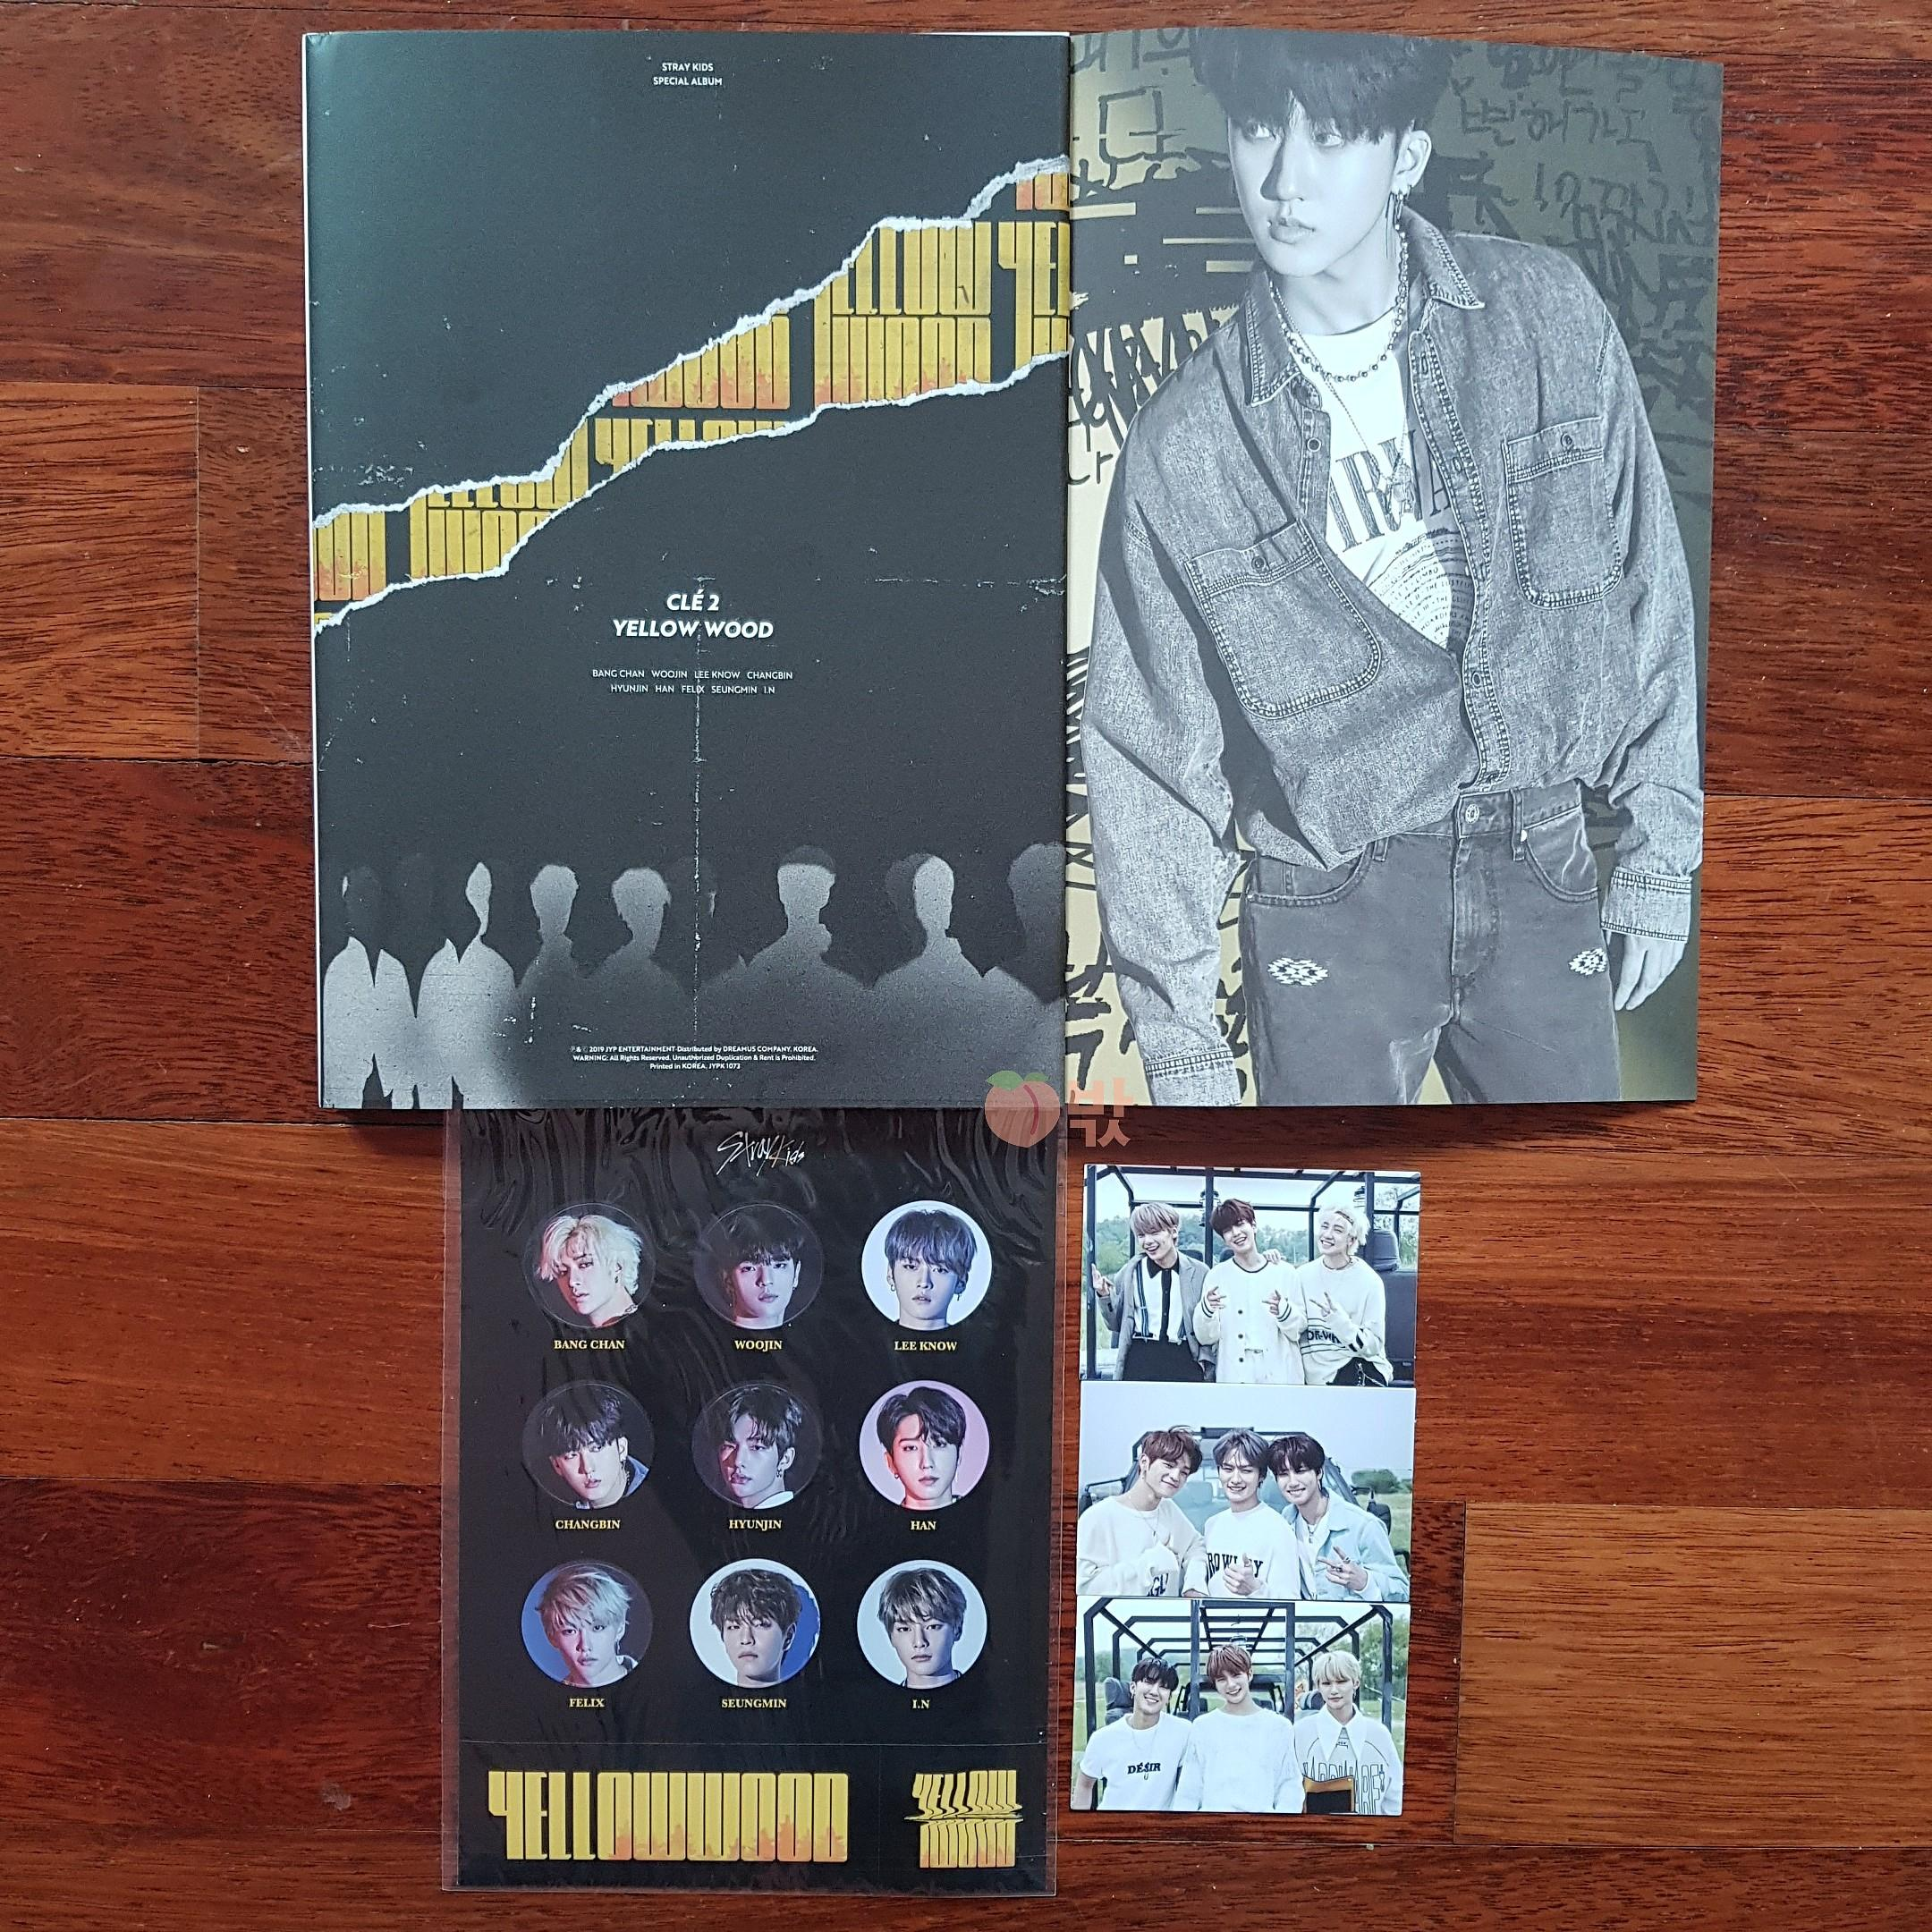 [Ready Stock] STRAY KIDS CLÉ 2 : YELLOW WOOD (LIMITED Ver. Changbin)